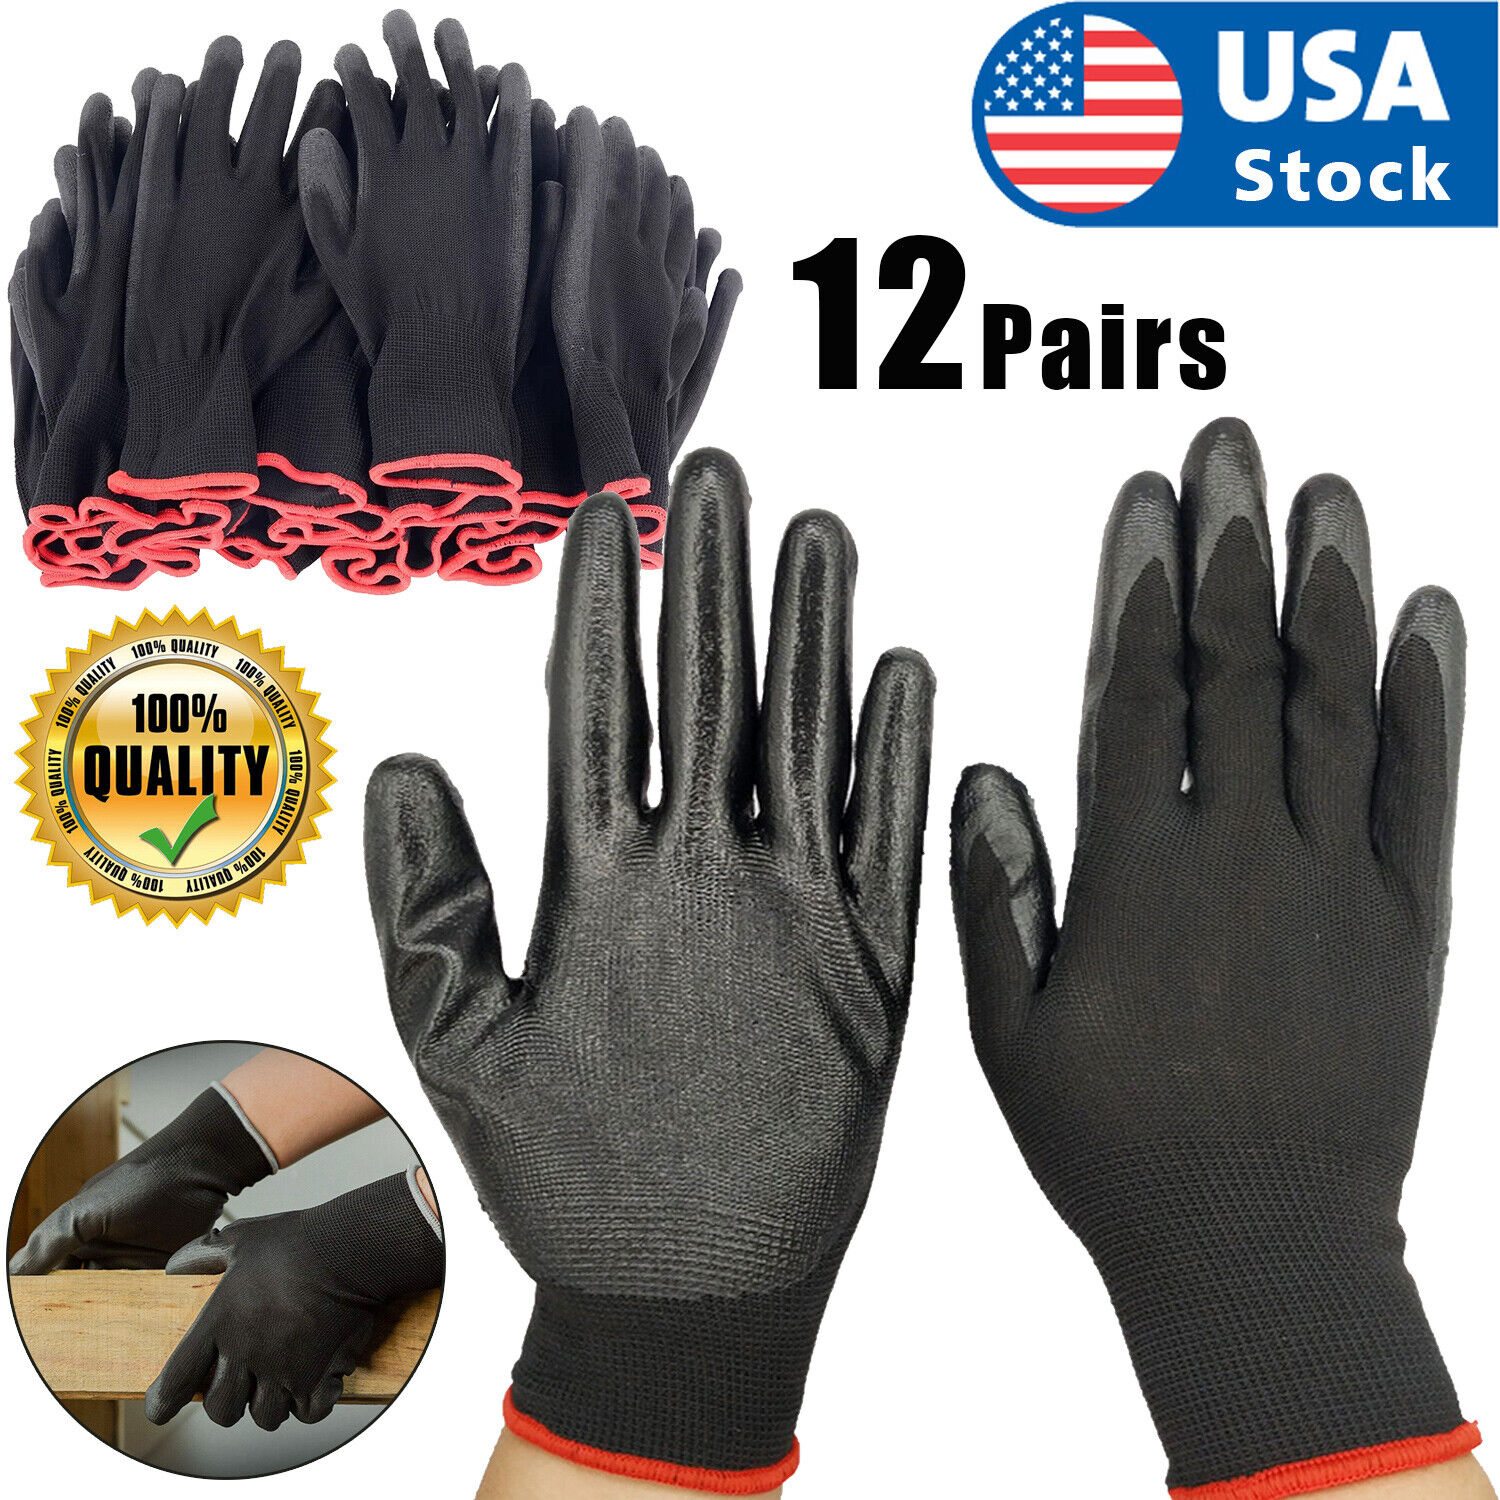 USA 12 Pairs Work Gloves Ultra-Thin Safety Polyurethane Coated Nylon Shell Black Business & Industrial